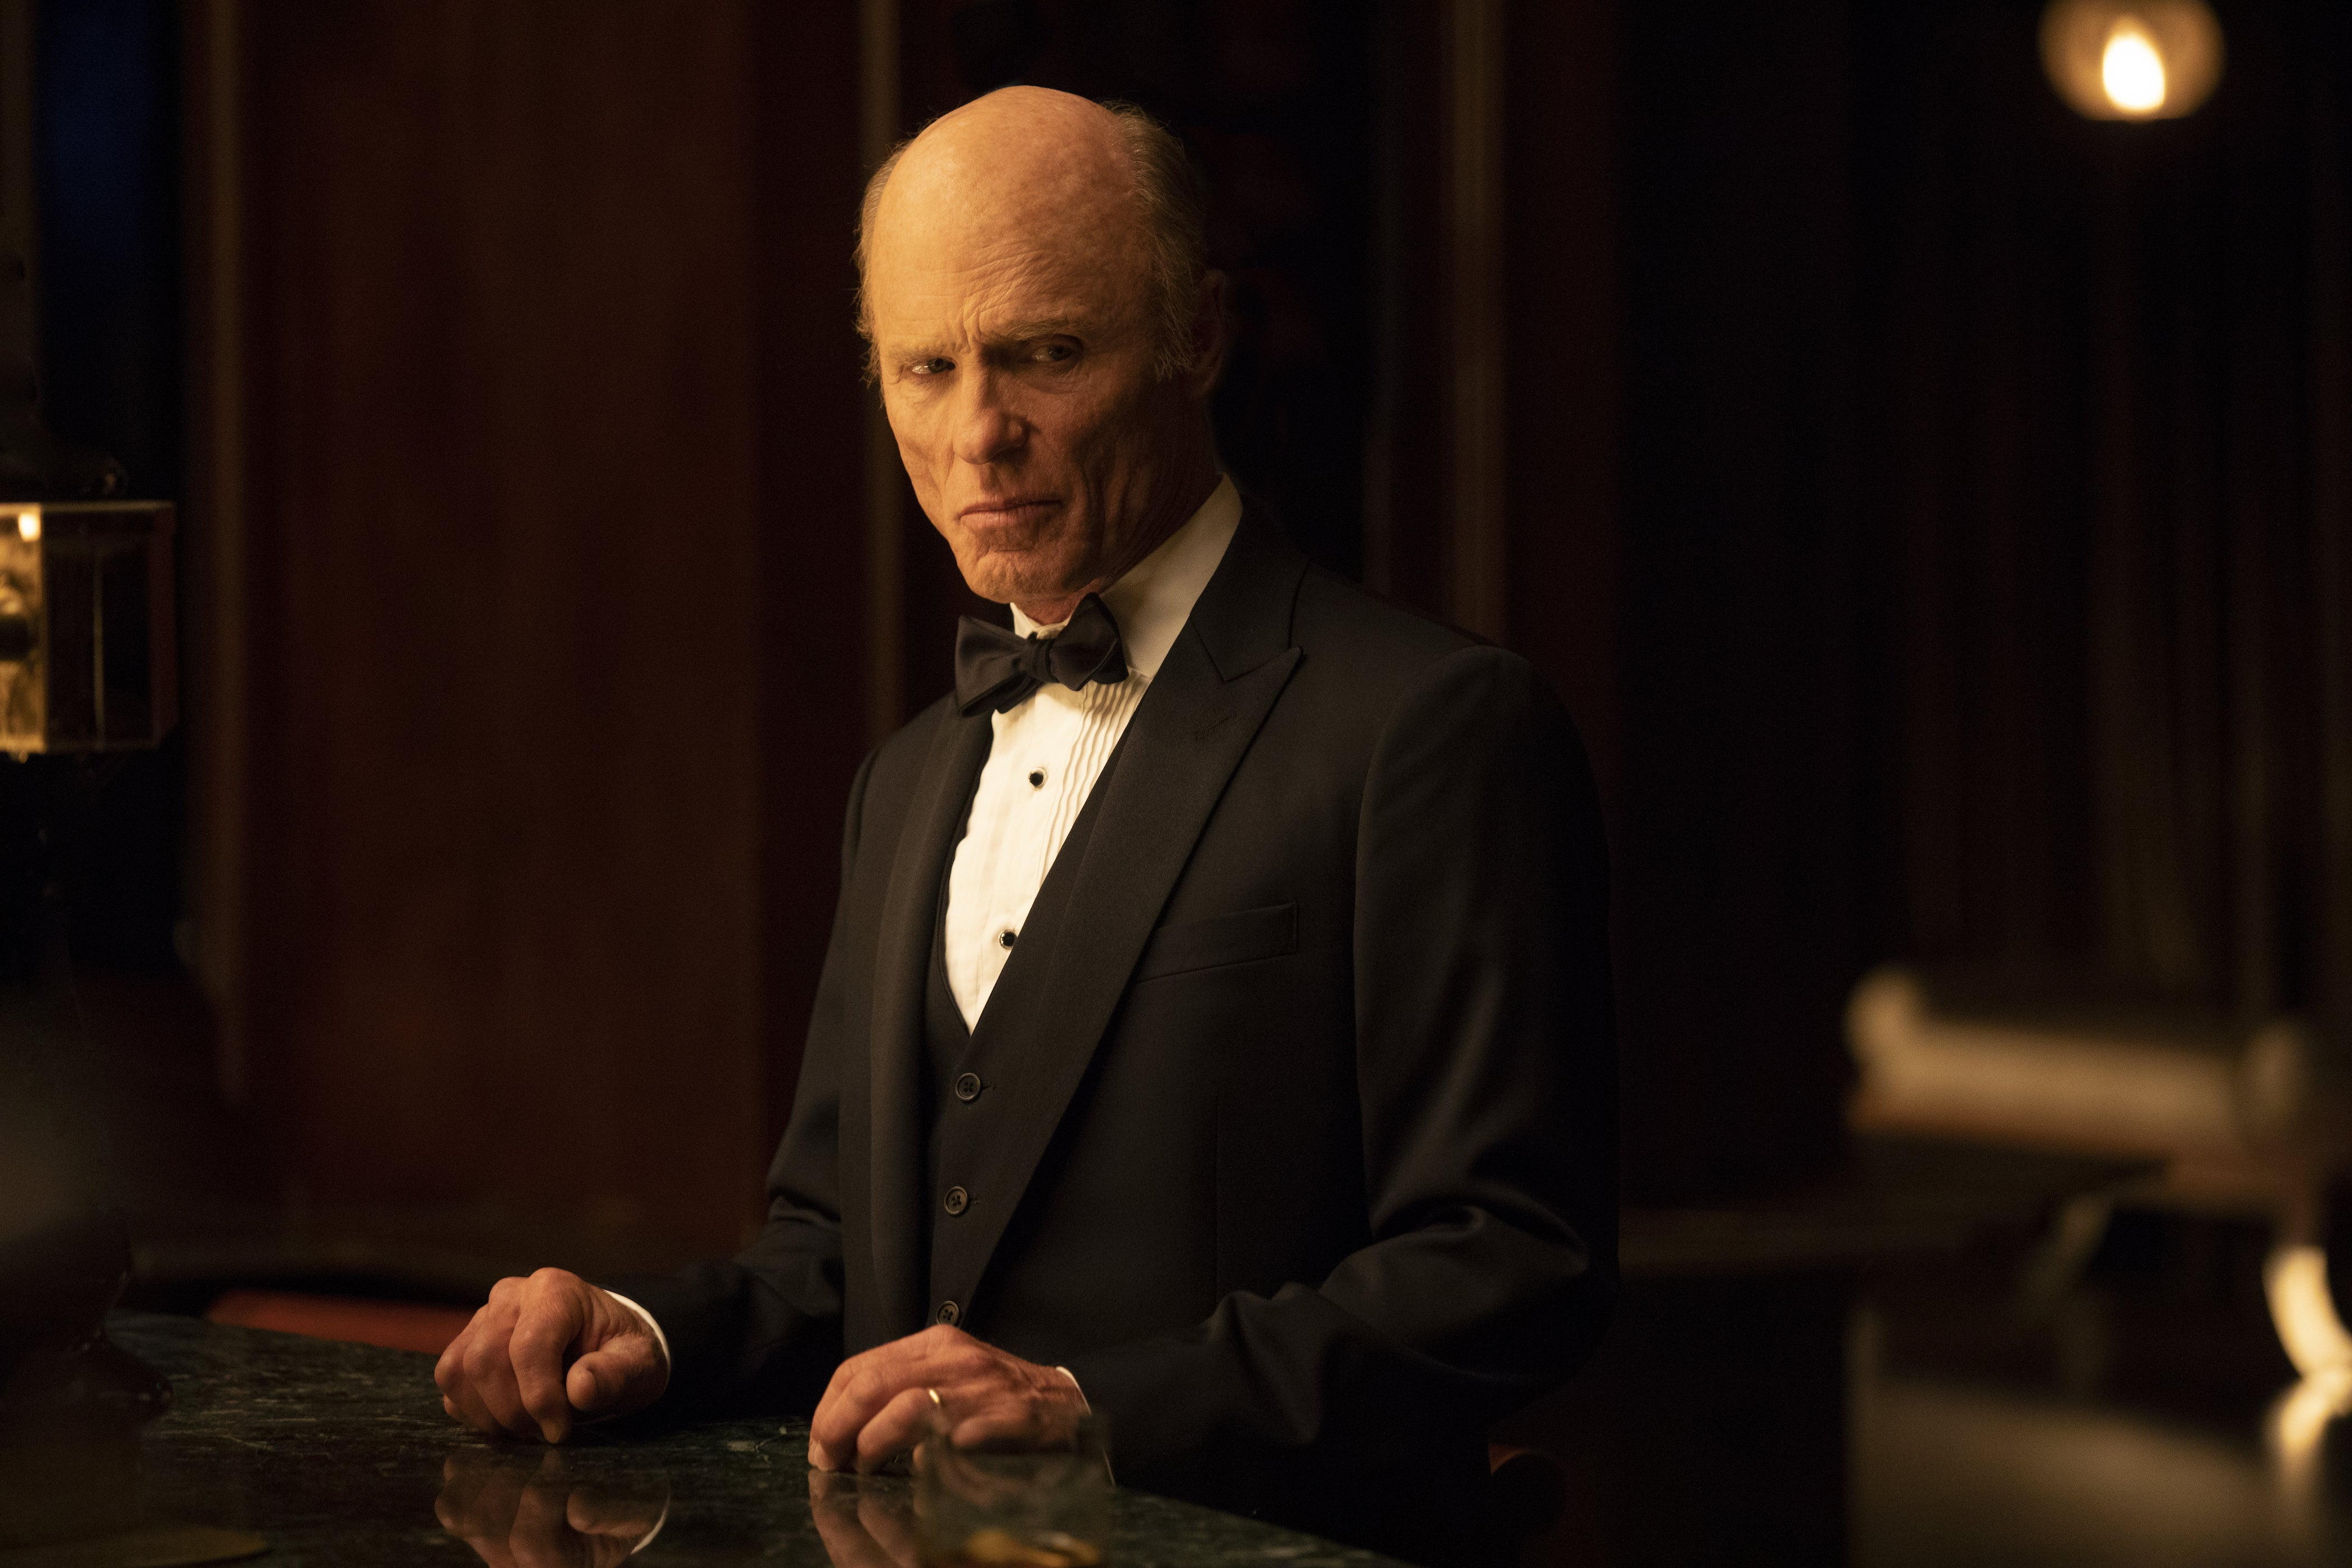 Westworld Approaches Its Endgame With Death, Tragedy And A Few Major Revelations